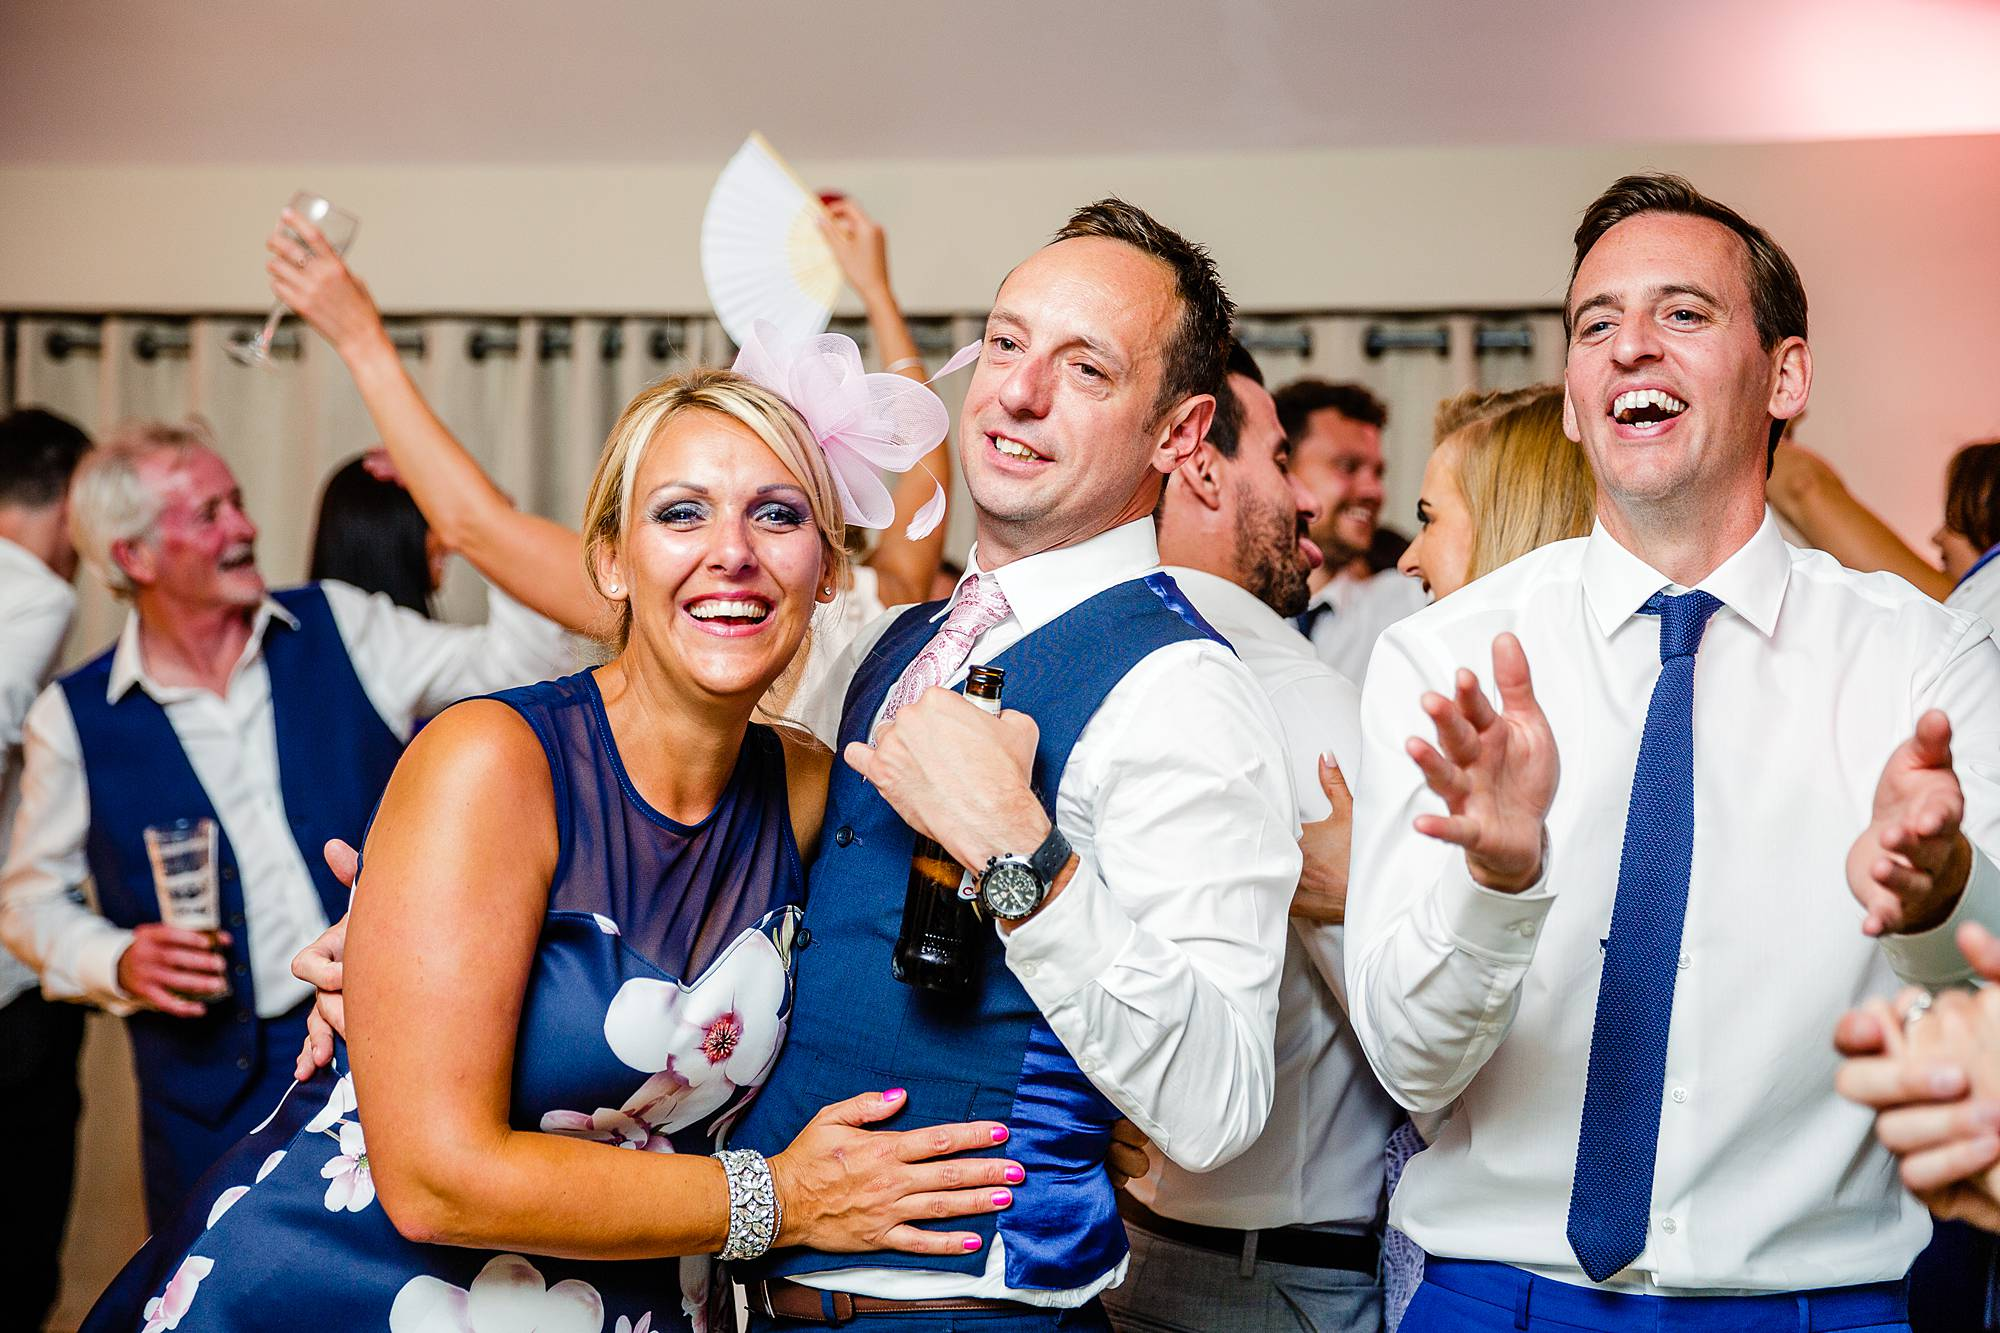 Houchins Essex Wedding Photographer_0115.jpg